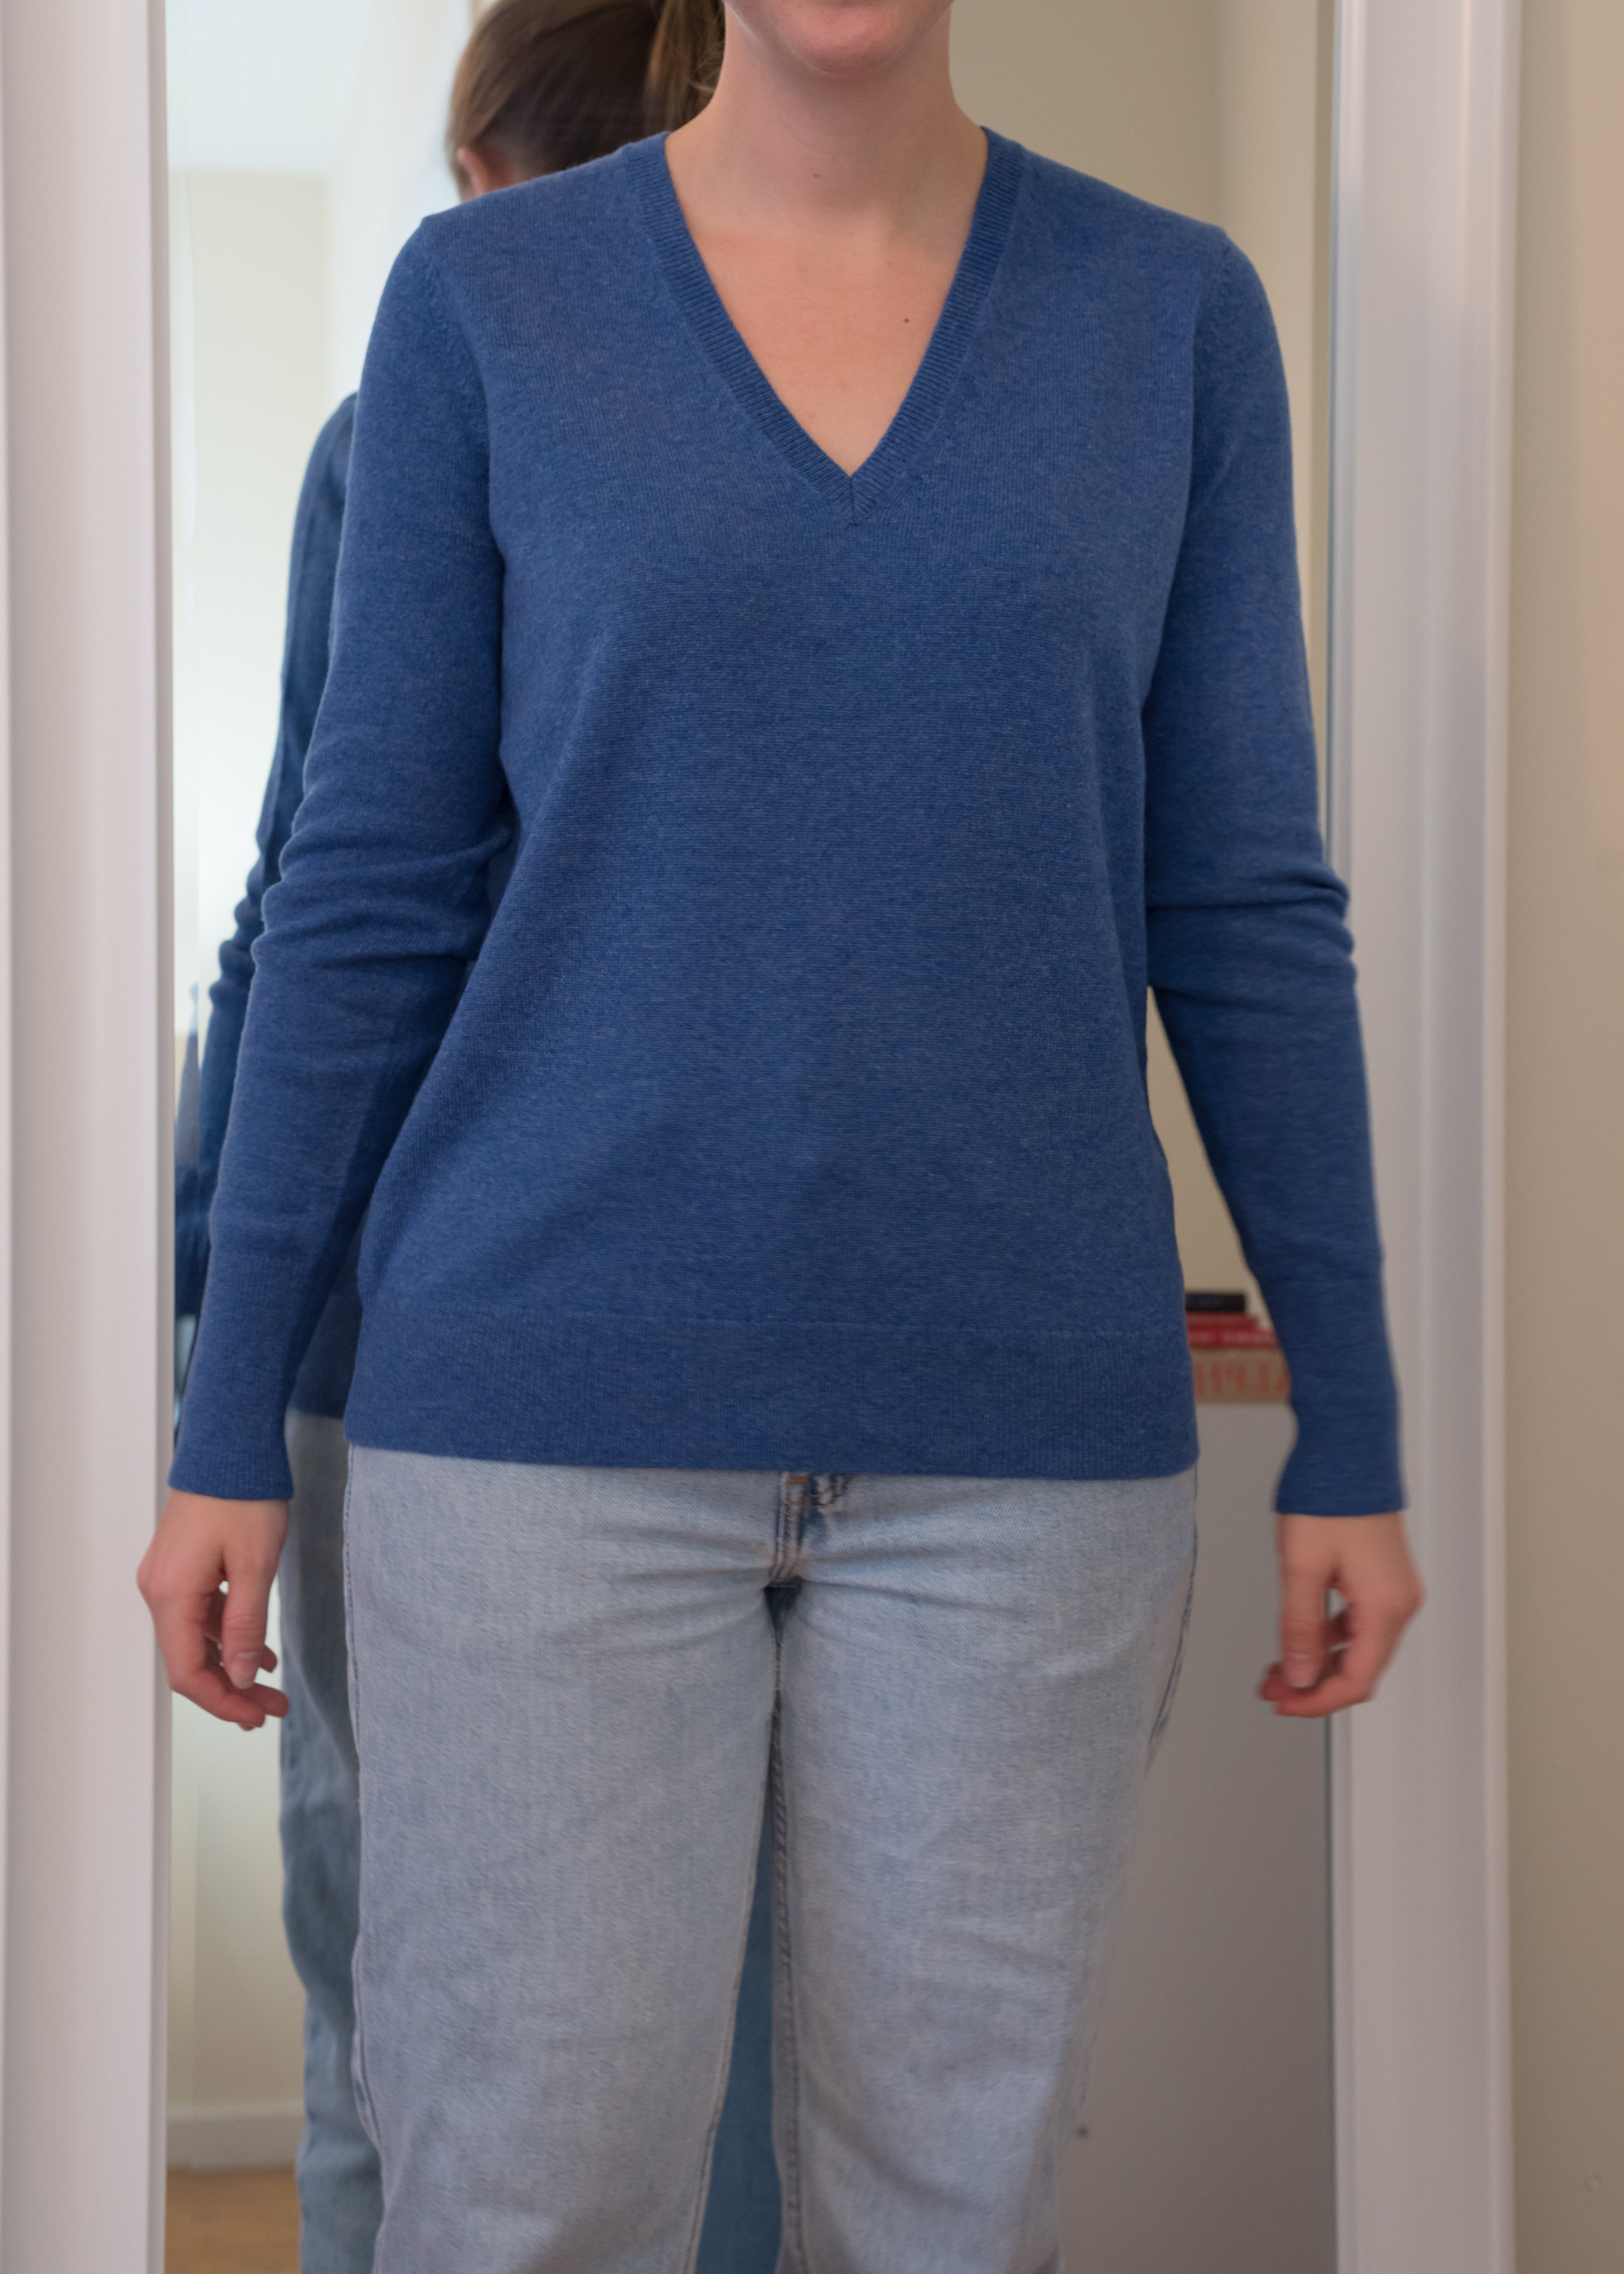 Everlane Cashmere V-Neck Sweater - Front View